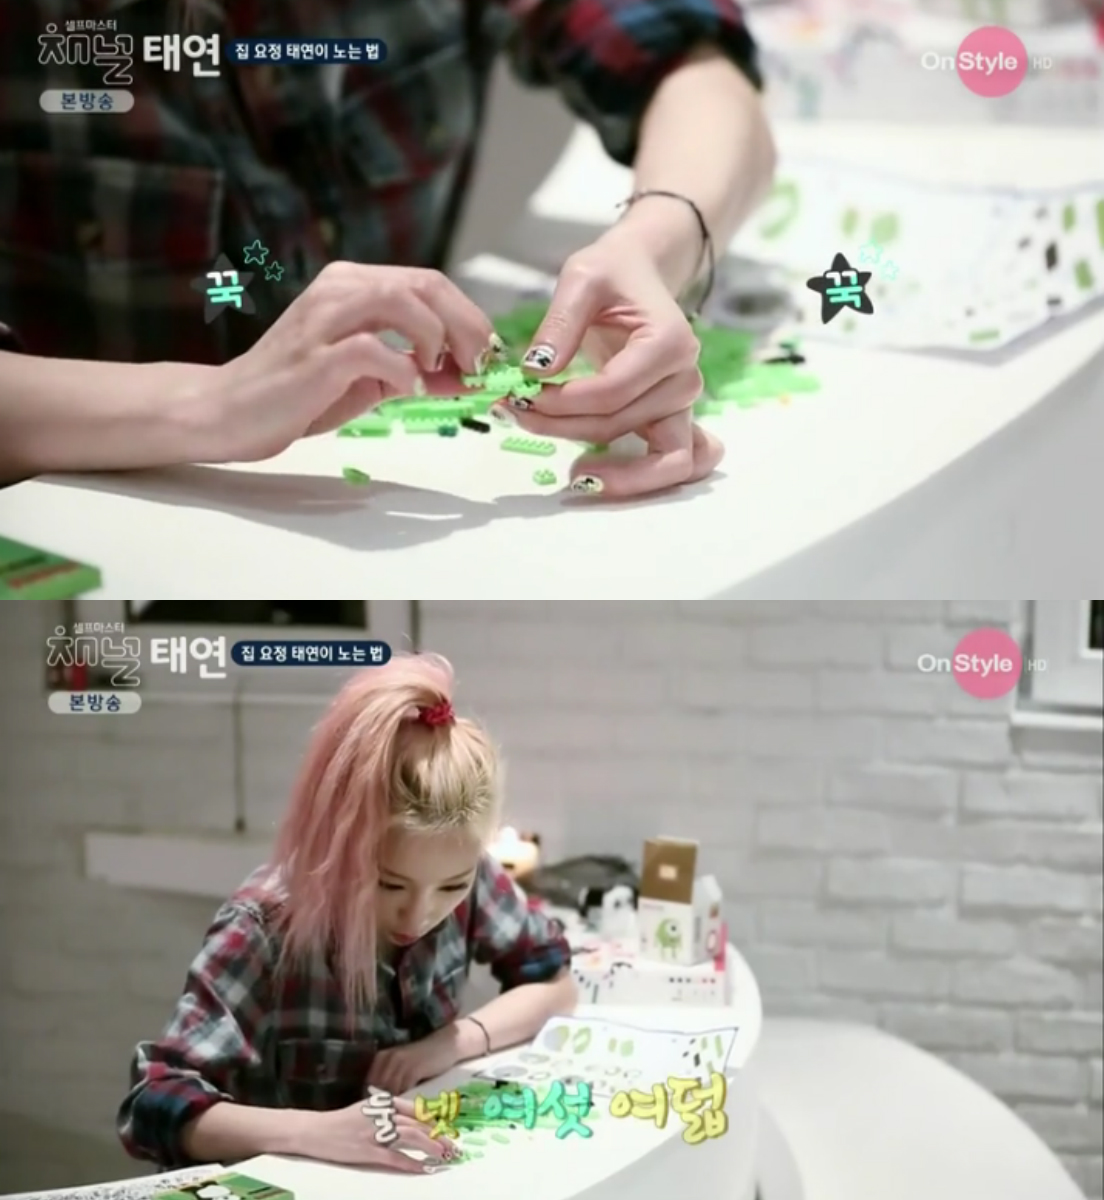 Taeyeon4 Taeyeon Then Opens Up Her Coloring Books